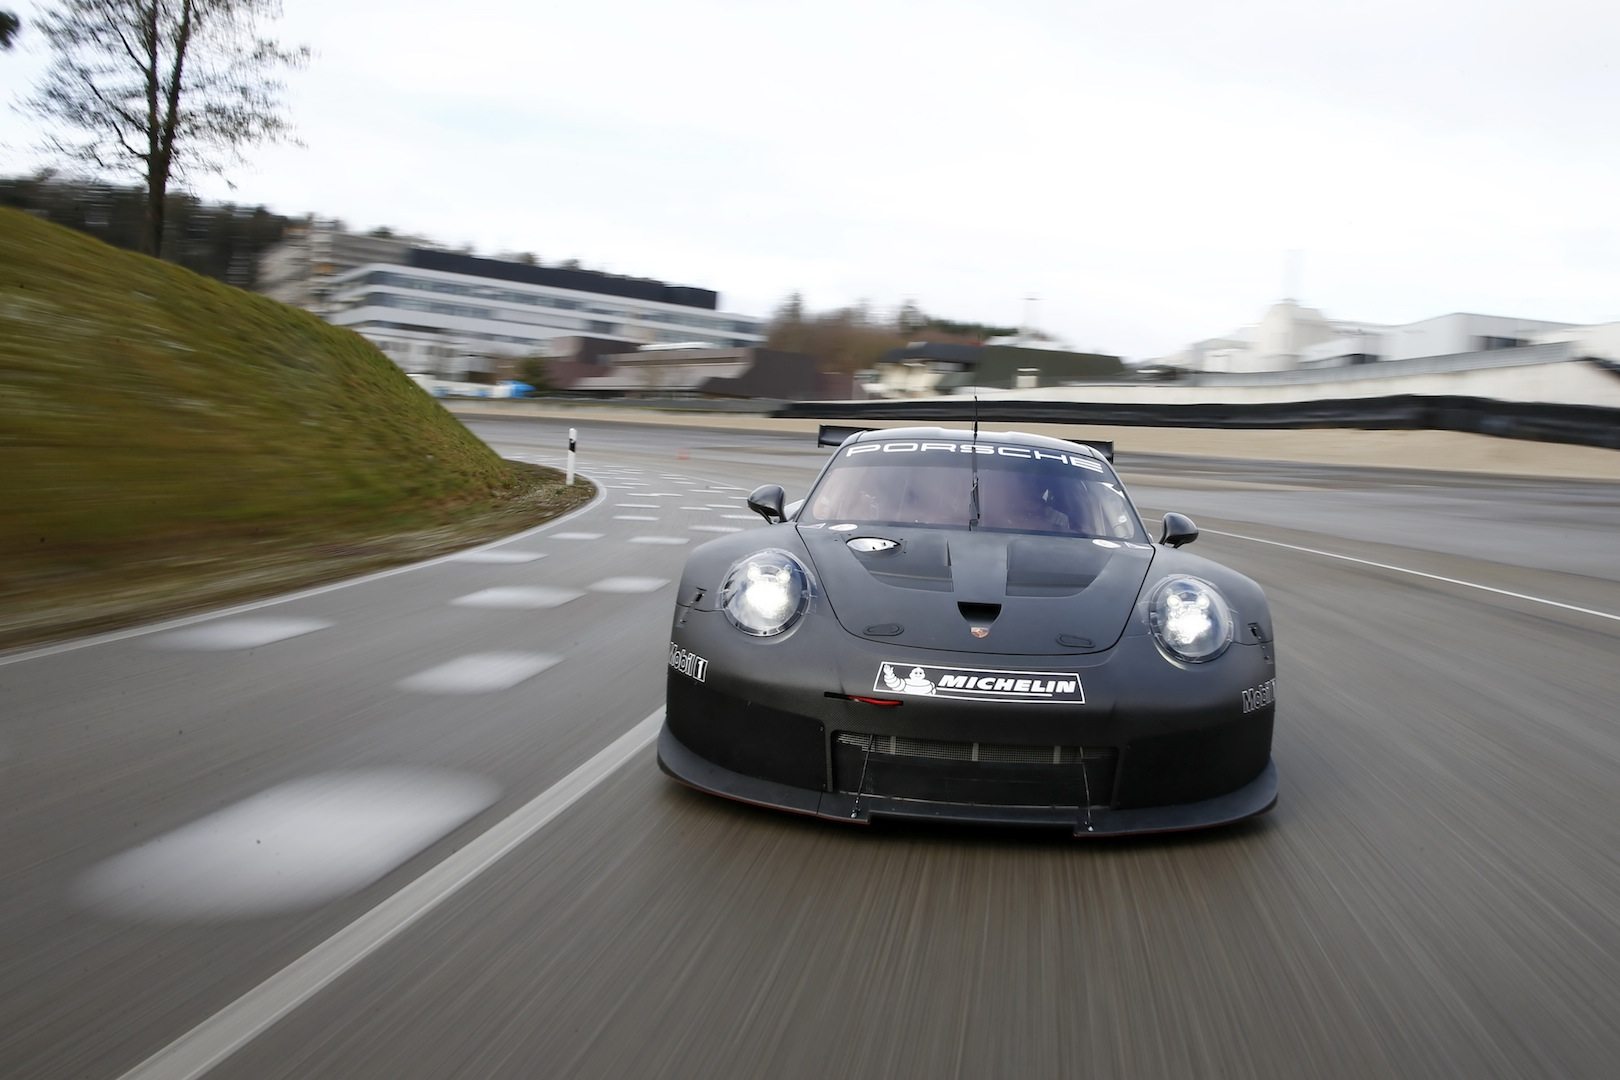 2017 porsche 911 gt3 rsr revealed ahead of daytona 24